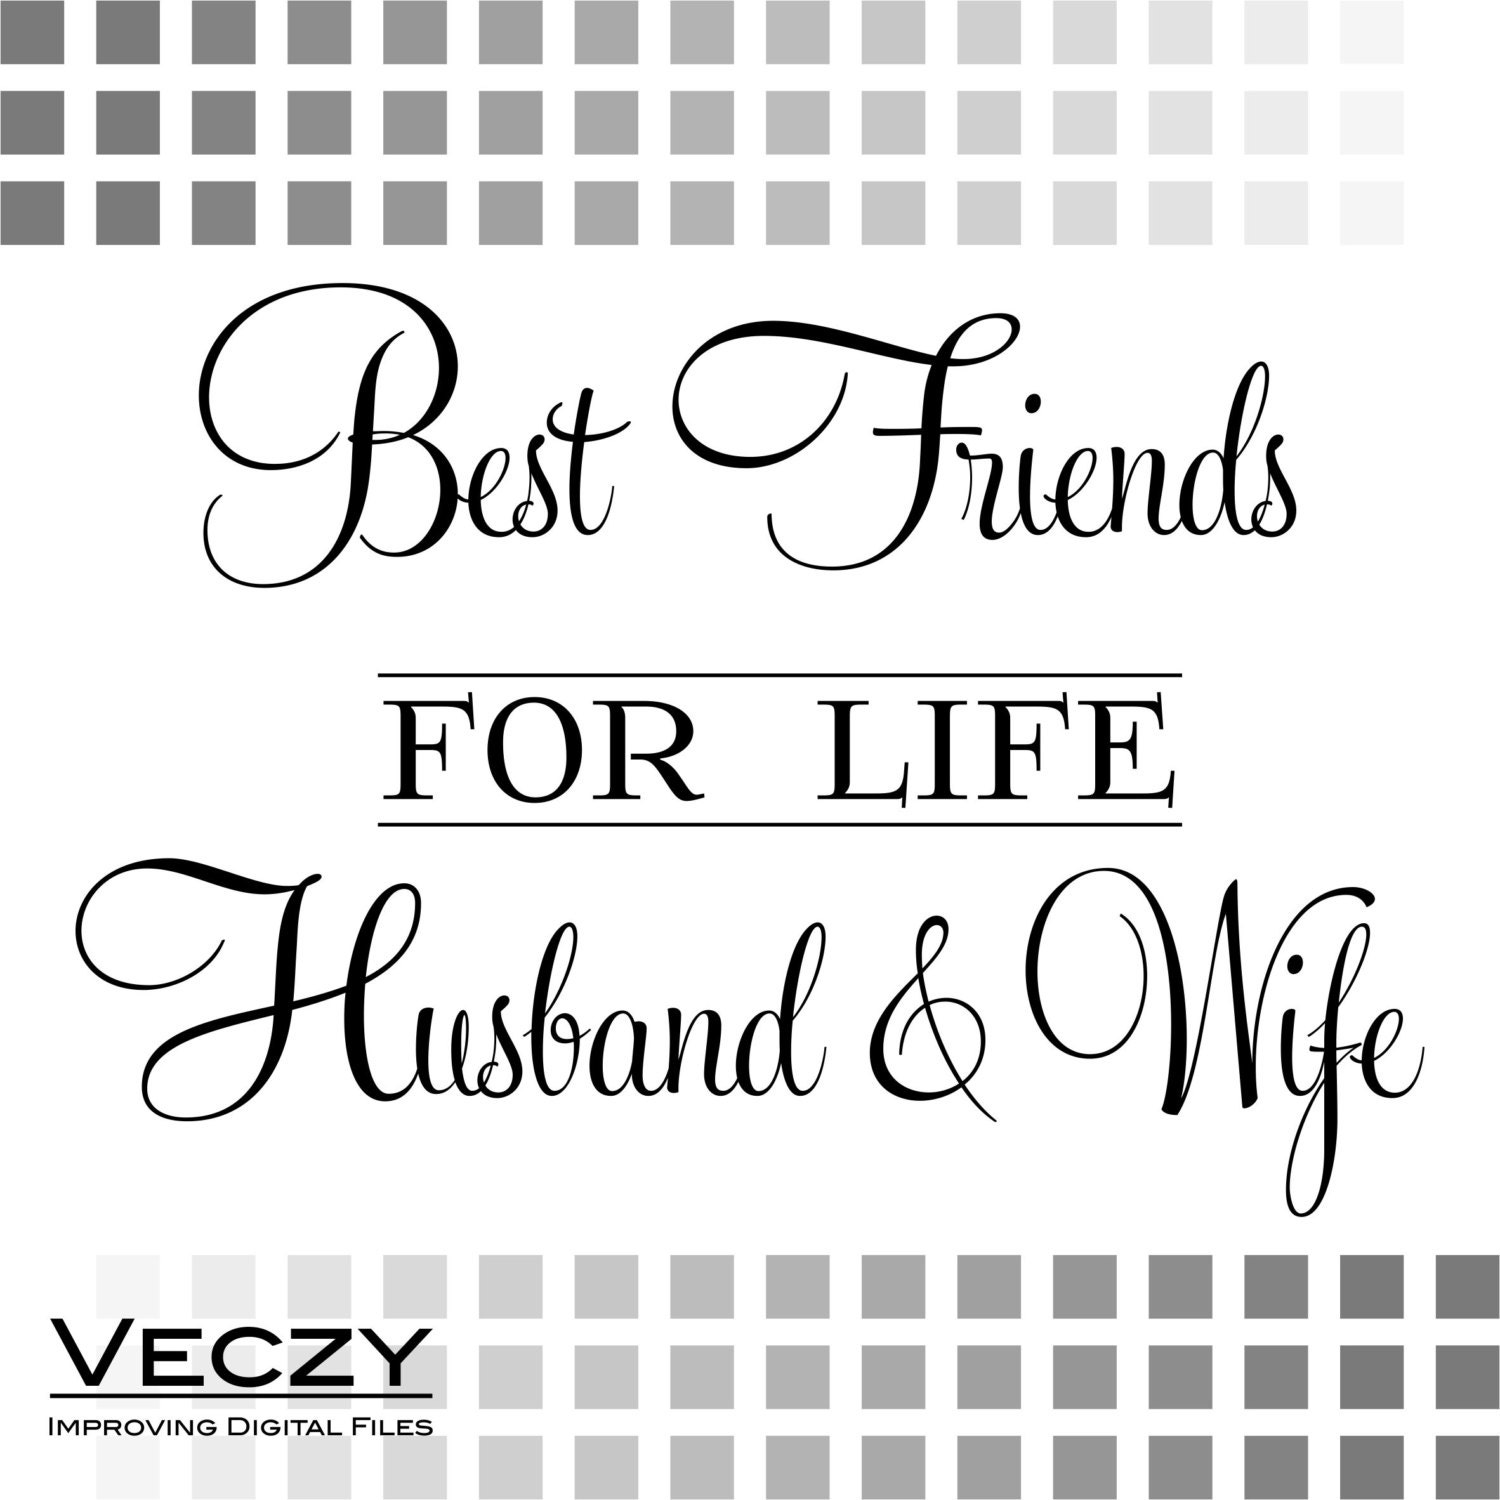 svg quotes Best Friends For Life Husband Wife svg files by ...